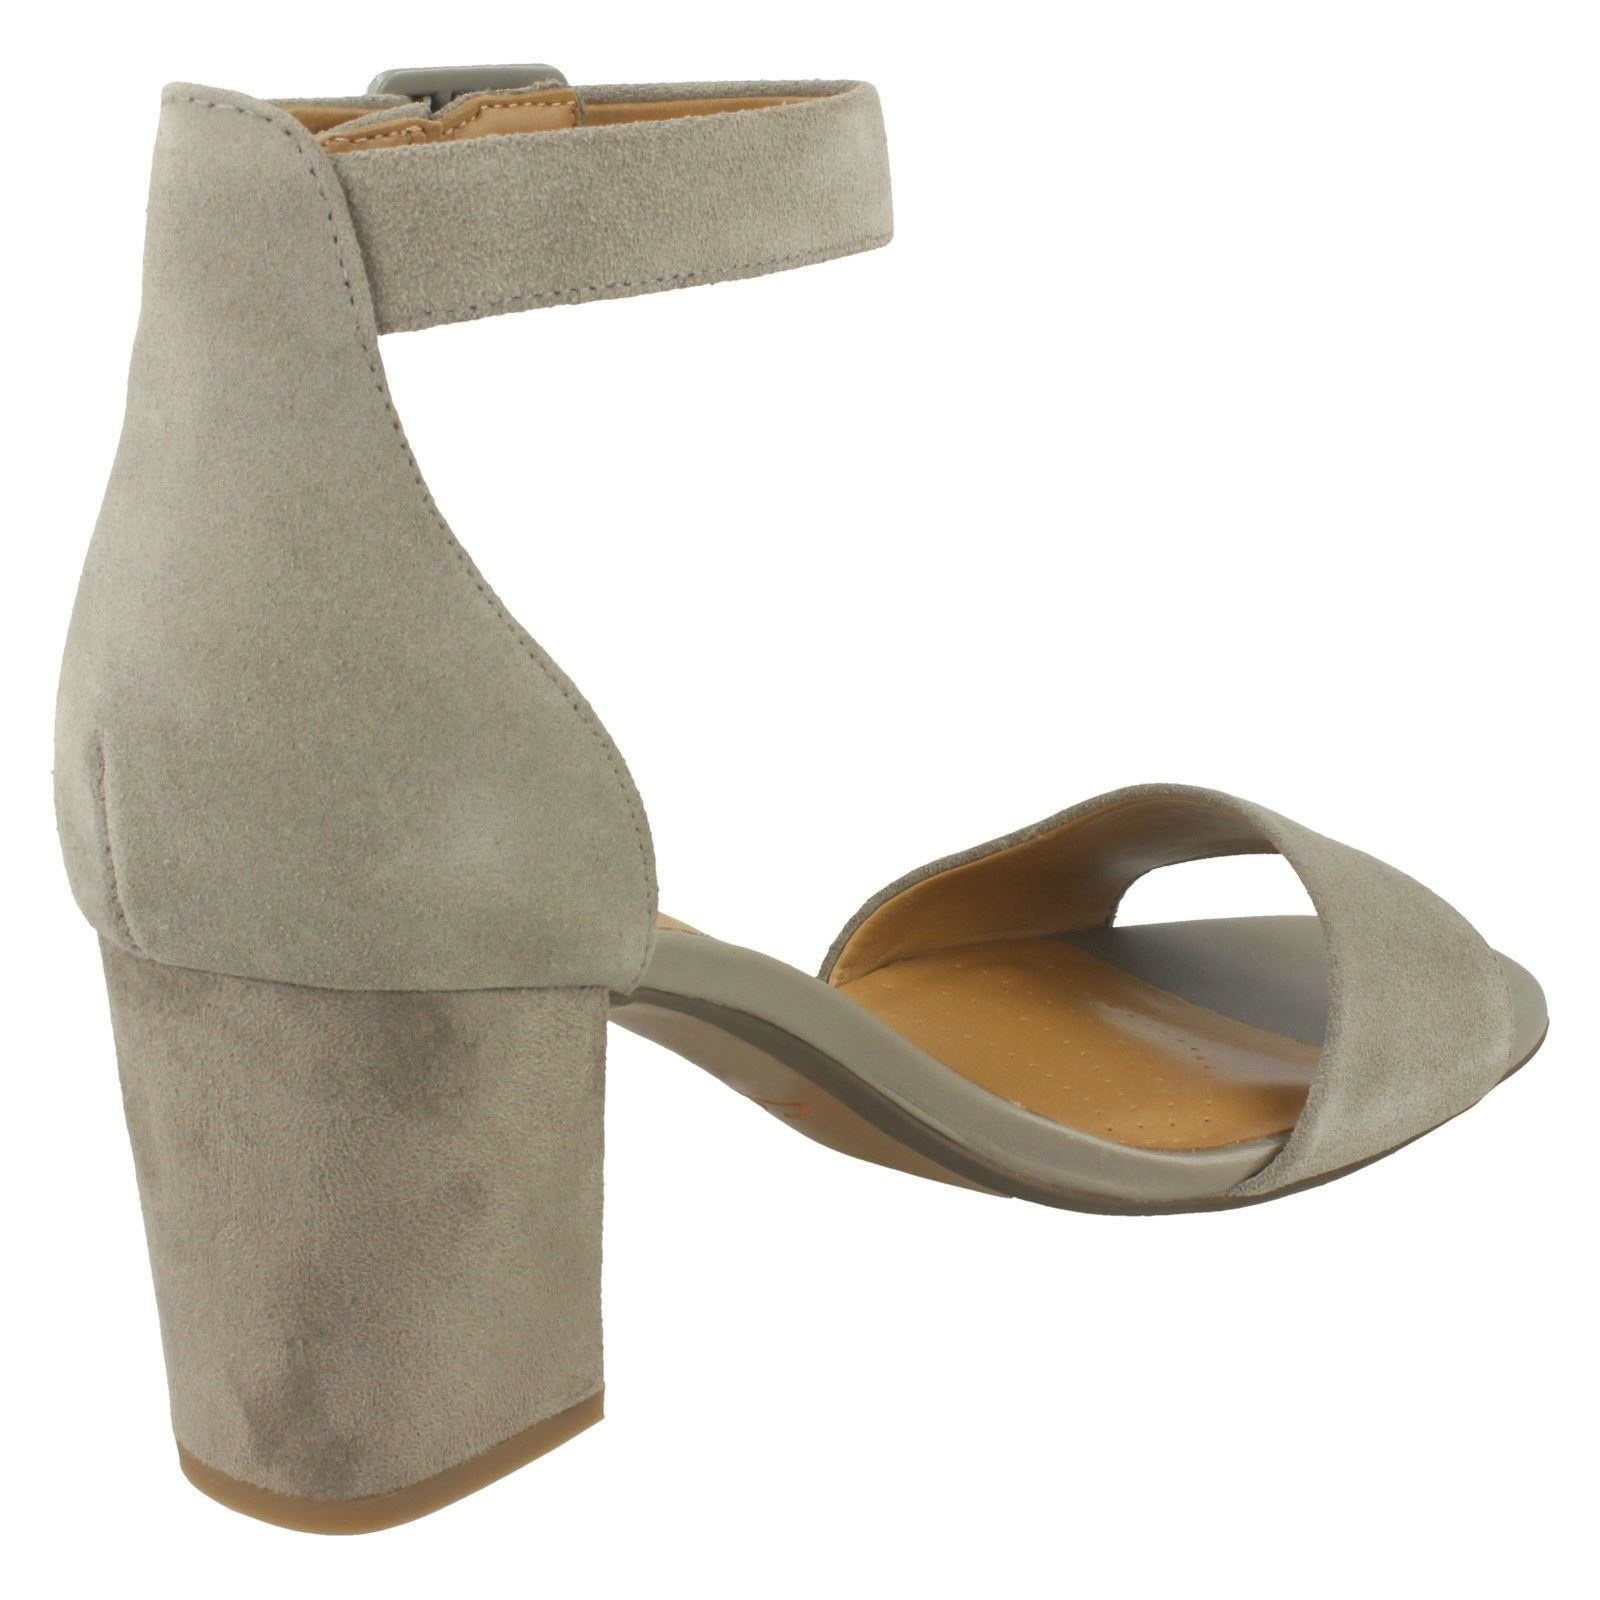 39b1281b52d Ladies Clarks Heeled Sandals - Deva Mae  Picture 2 of 10  Picture 3 of 10  ...